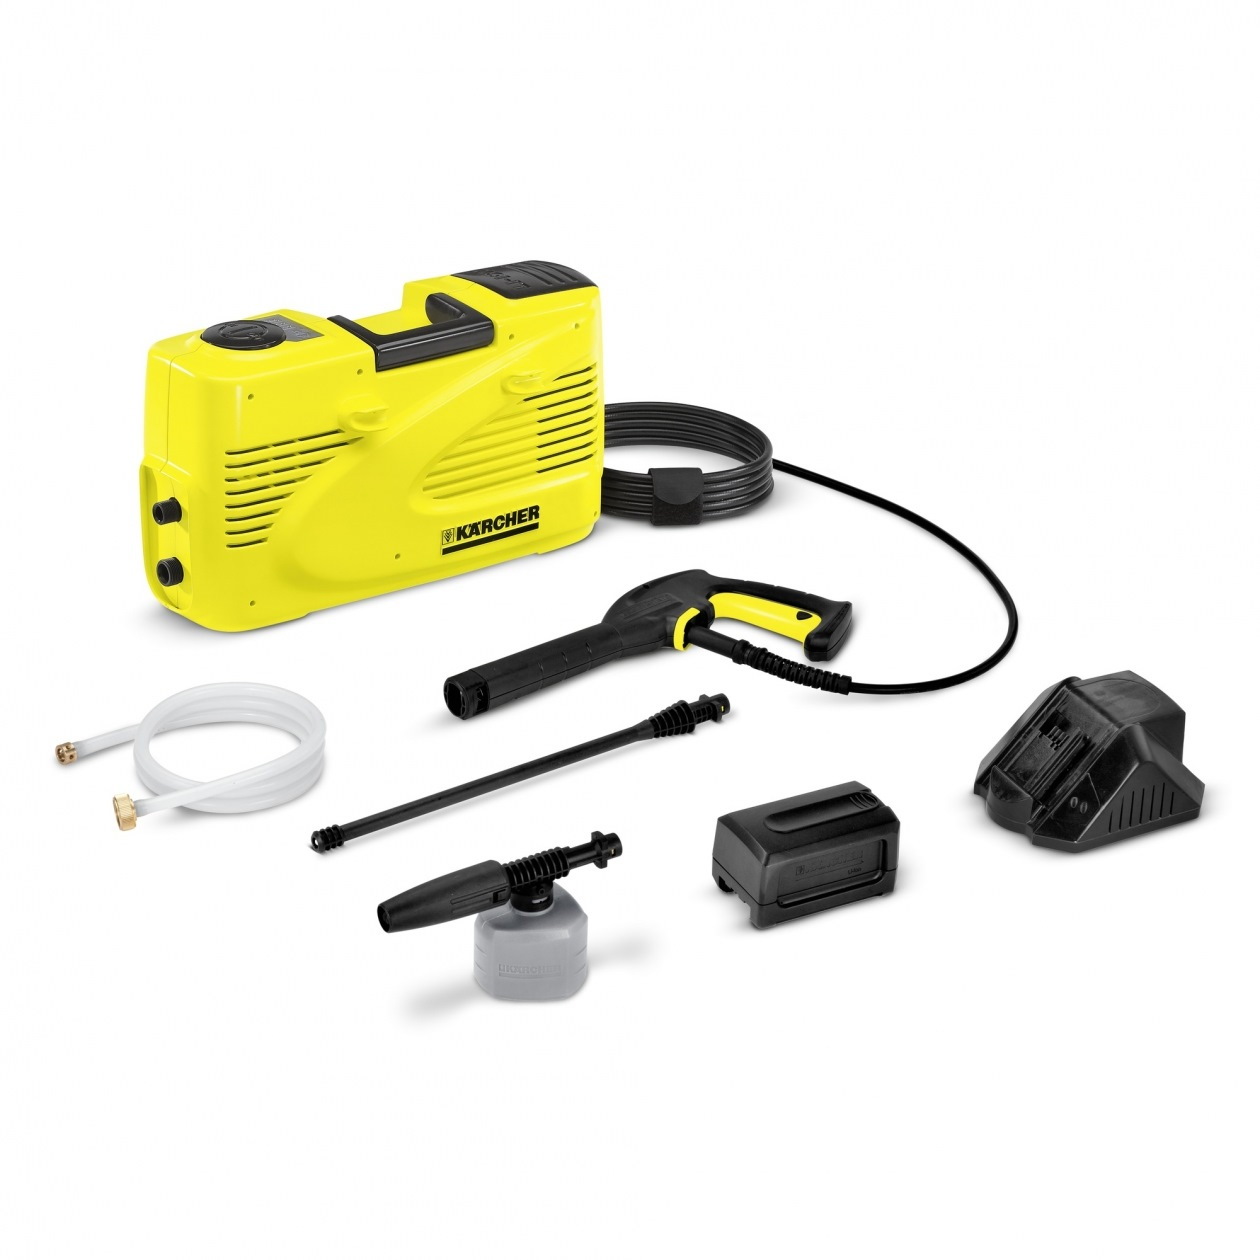 Karcher Outdoor Pressure Washer K1 Batt